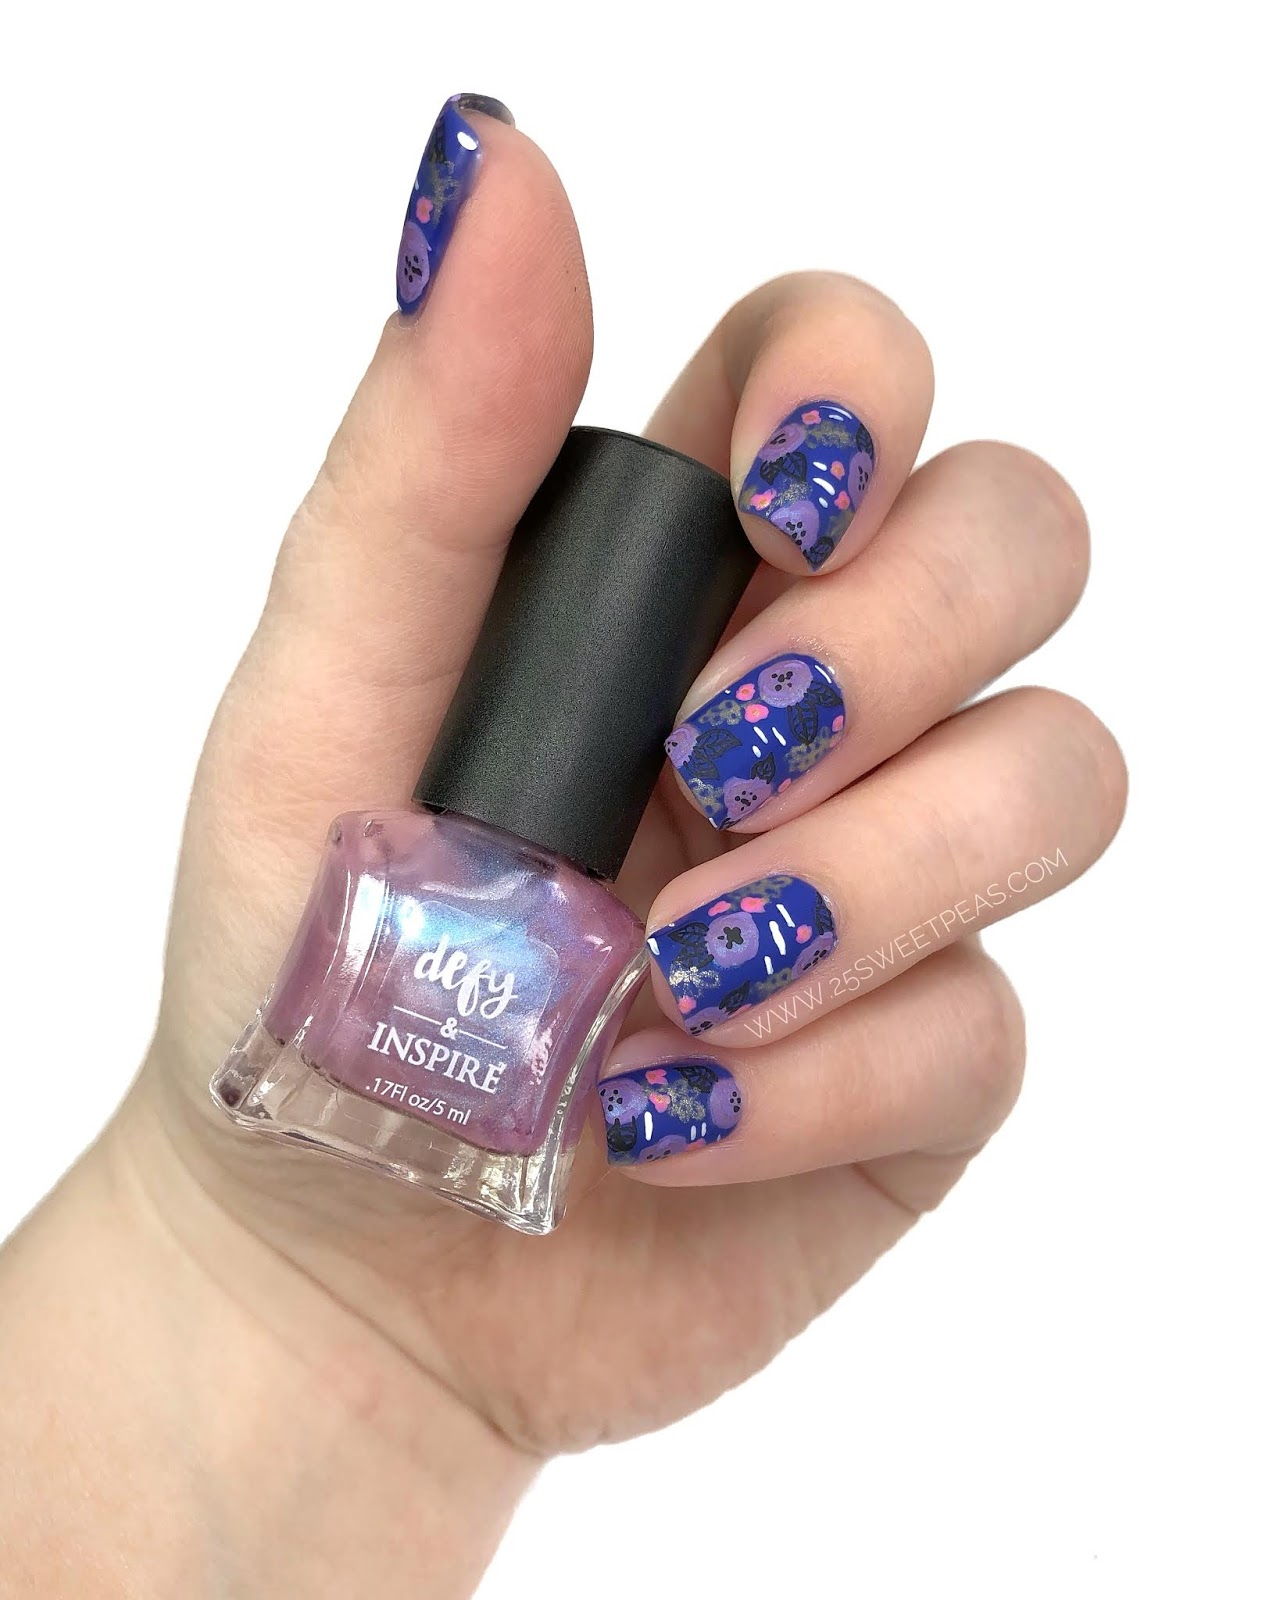 Floral Nail Art: 2 Polishes, 3 Looks + Floral Nail Art